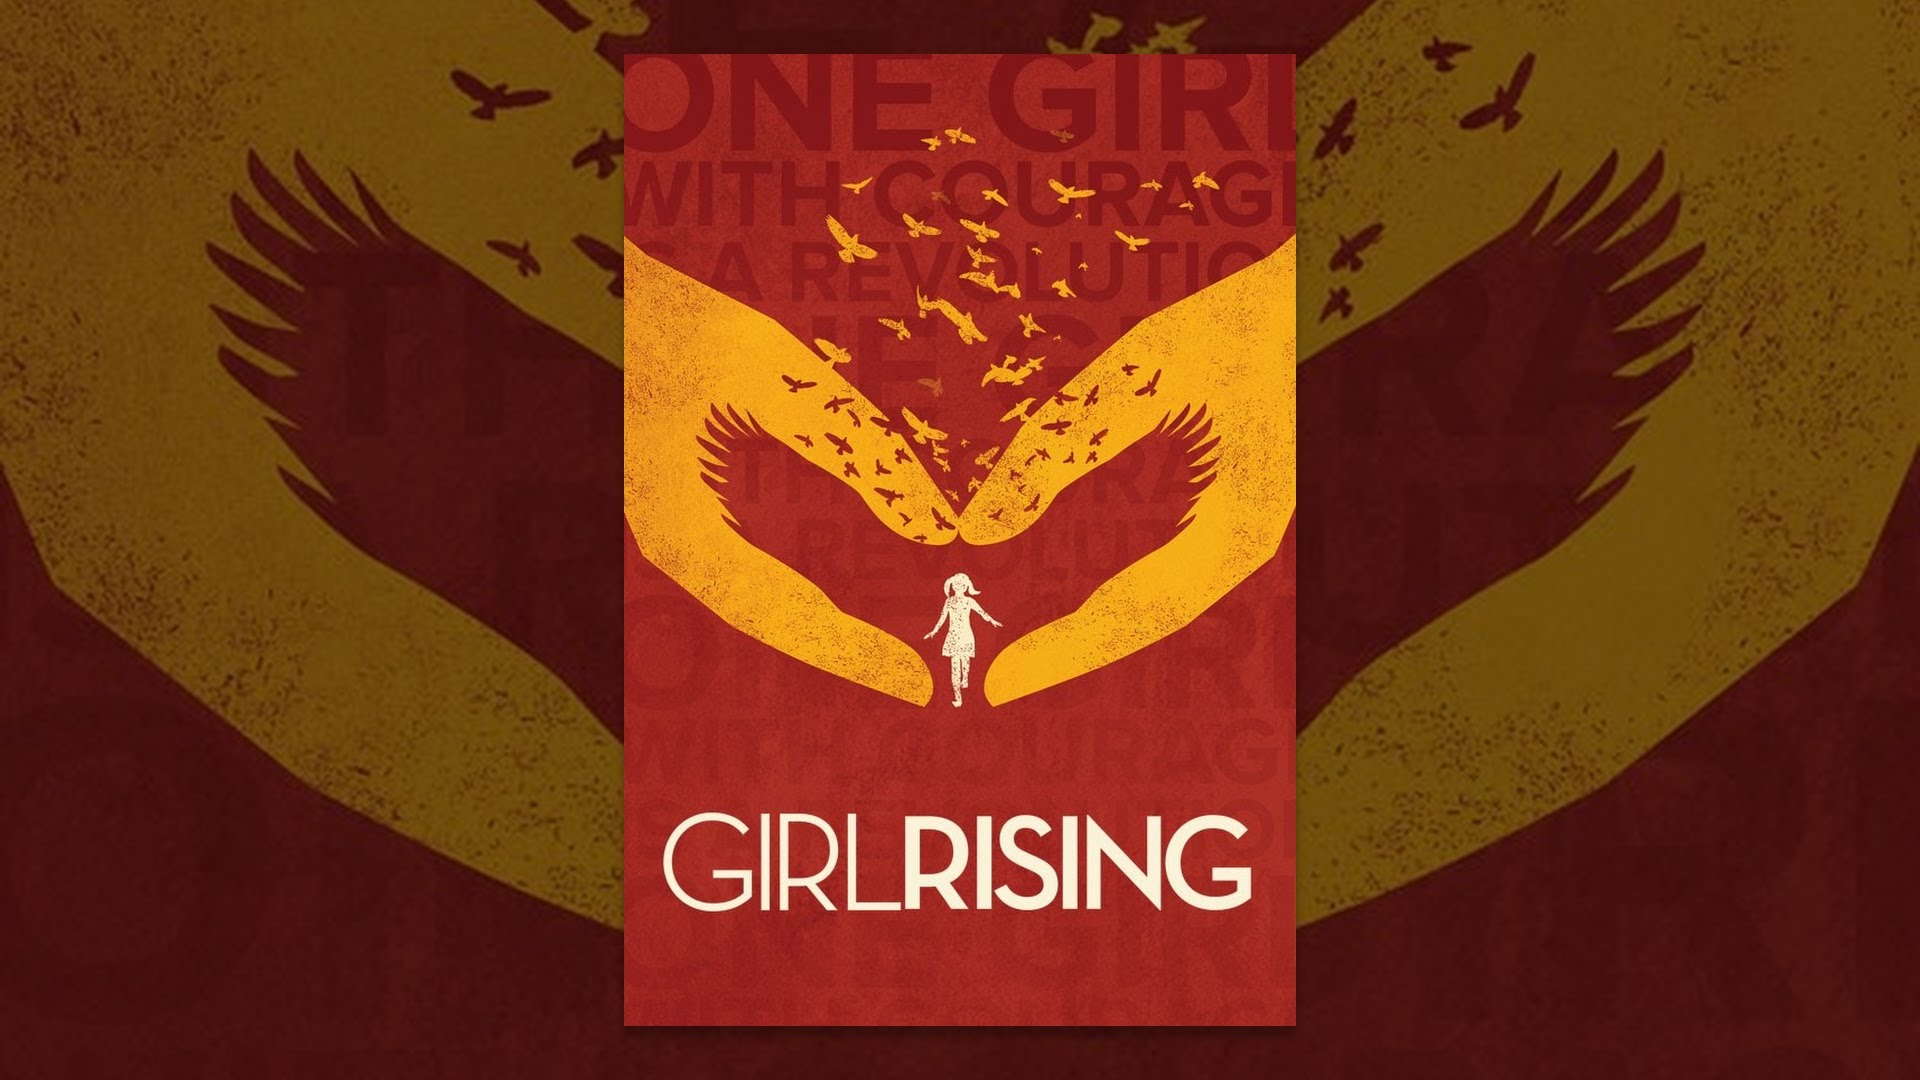 humanizing the struggles of young women in the documentary girl rising A young woman struggles to survive on her own in the wake of a mysterious epidemic that has killed much of society, and forced her deep into the unforgiving wilderness.